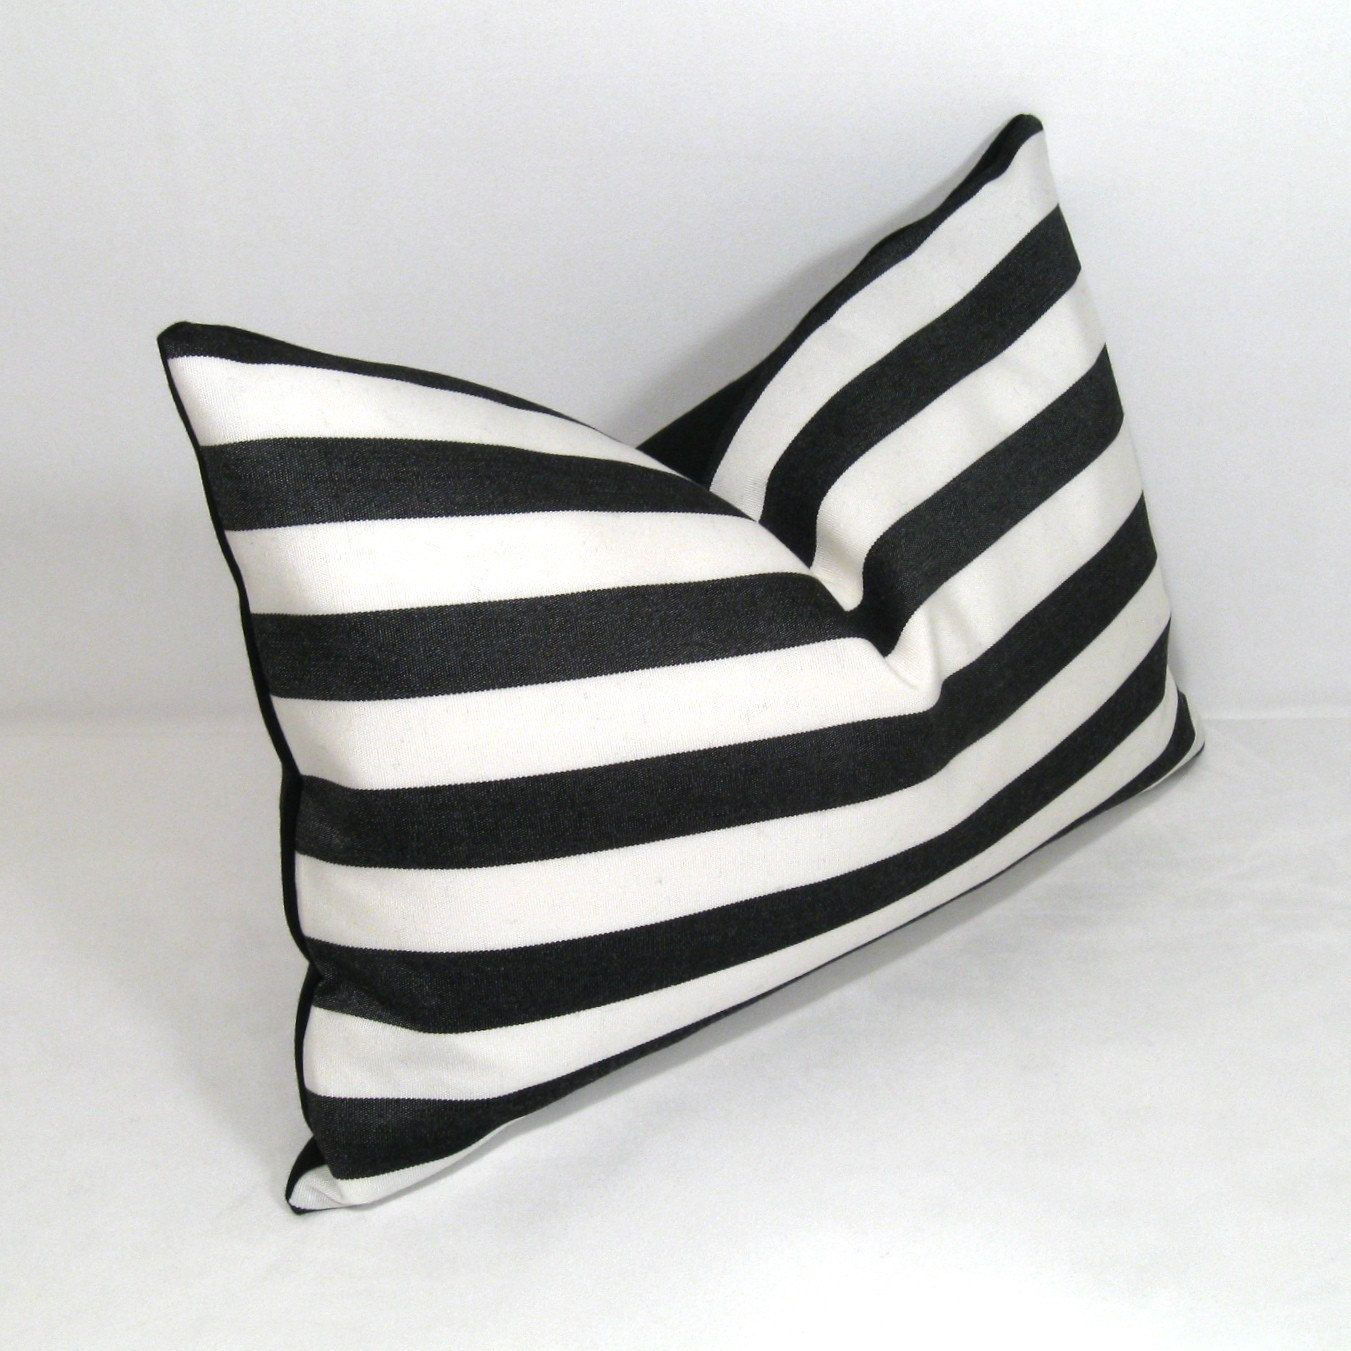 Black & White Striped Pillow Cover, Modern Outdoor Pillow Cover, Decorative  Throw Pillow Cover Sunbrella Pillow Cushion Cover, Black Stripes